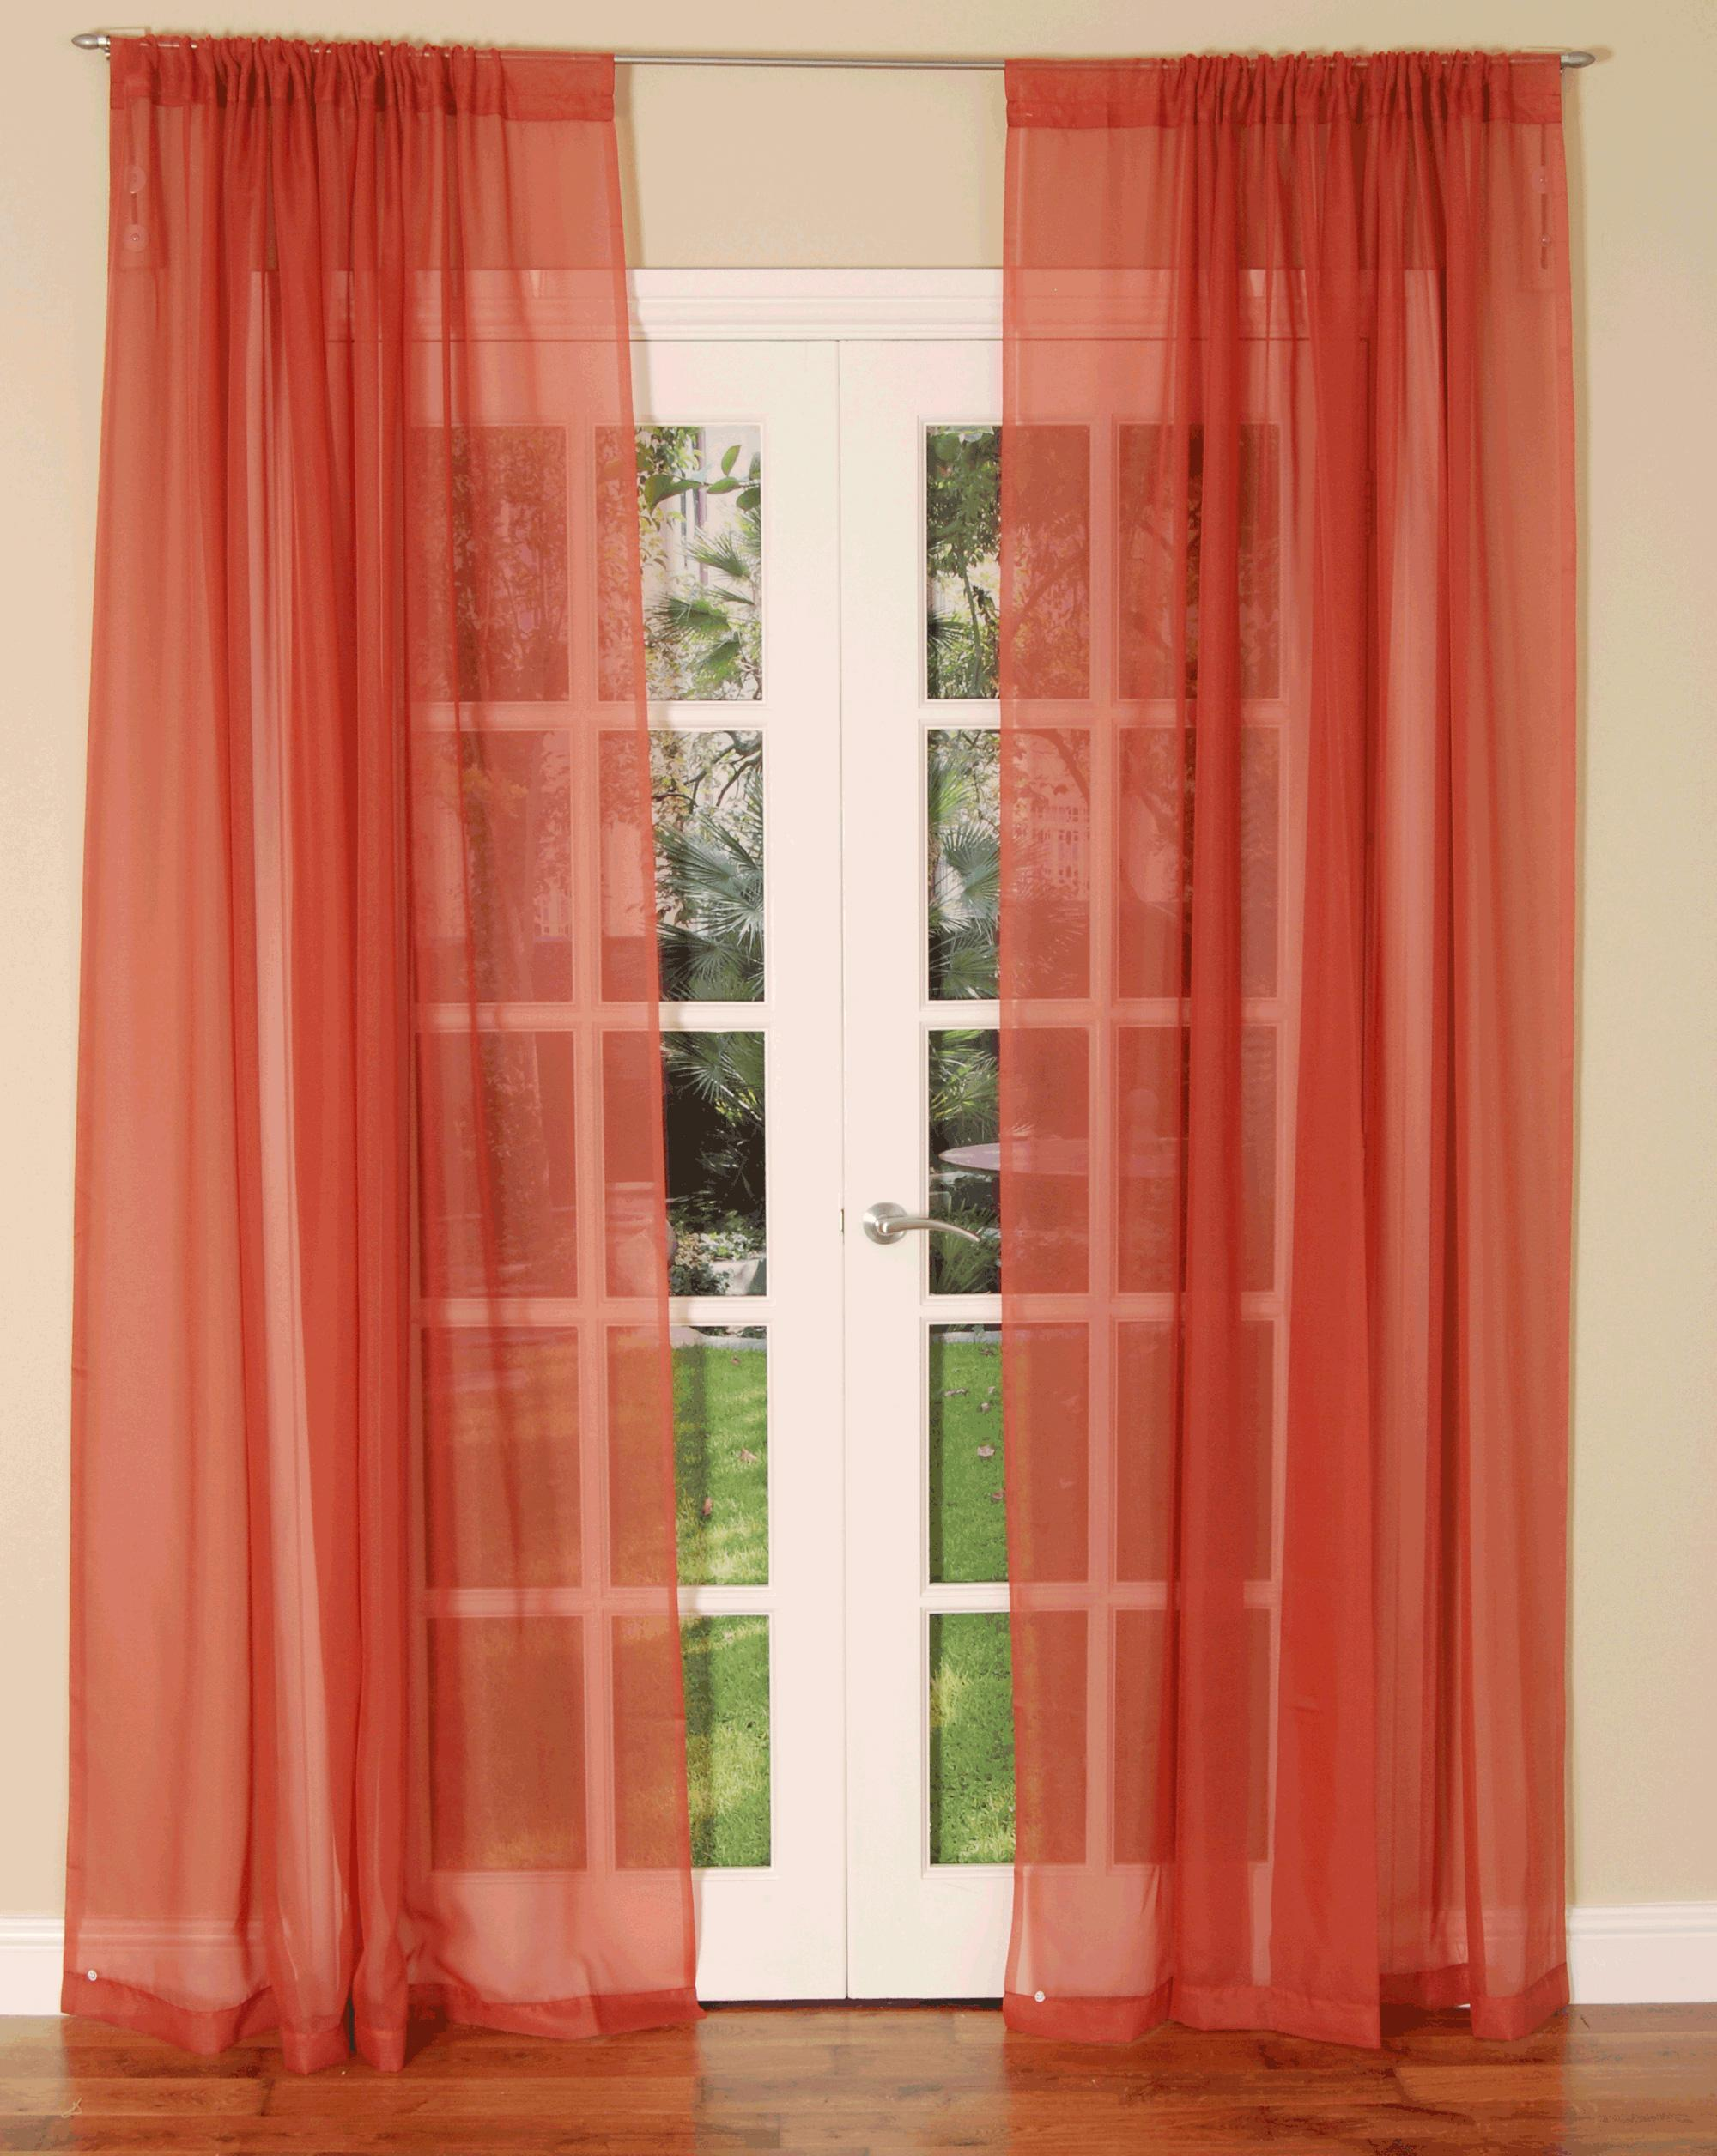 sizing trendy regard idea x rods lengths rod to length drapes window with charming ideas shower drape standard curtain